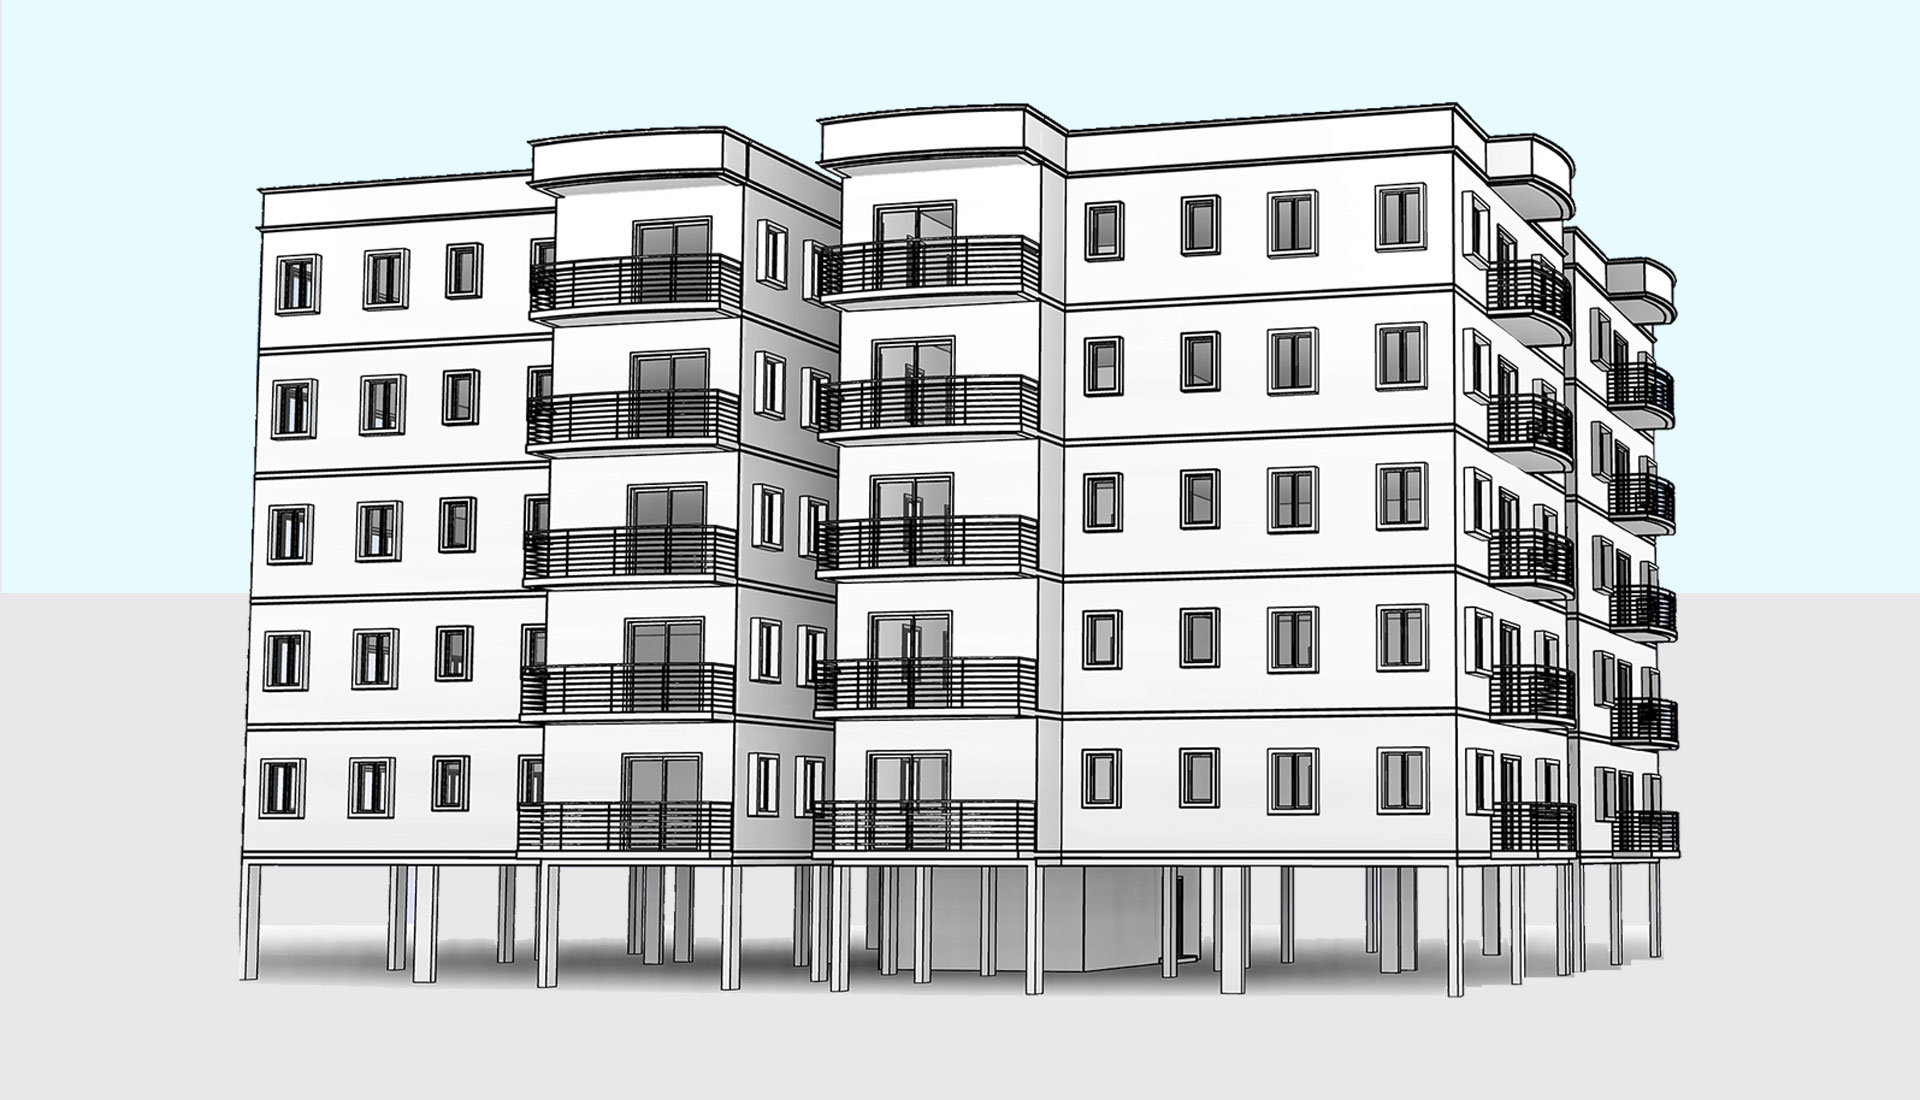 Architectural-Model_Residential-Apartment-Flats_Revit-Modeling-Project